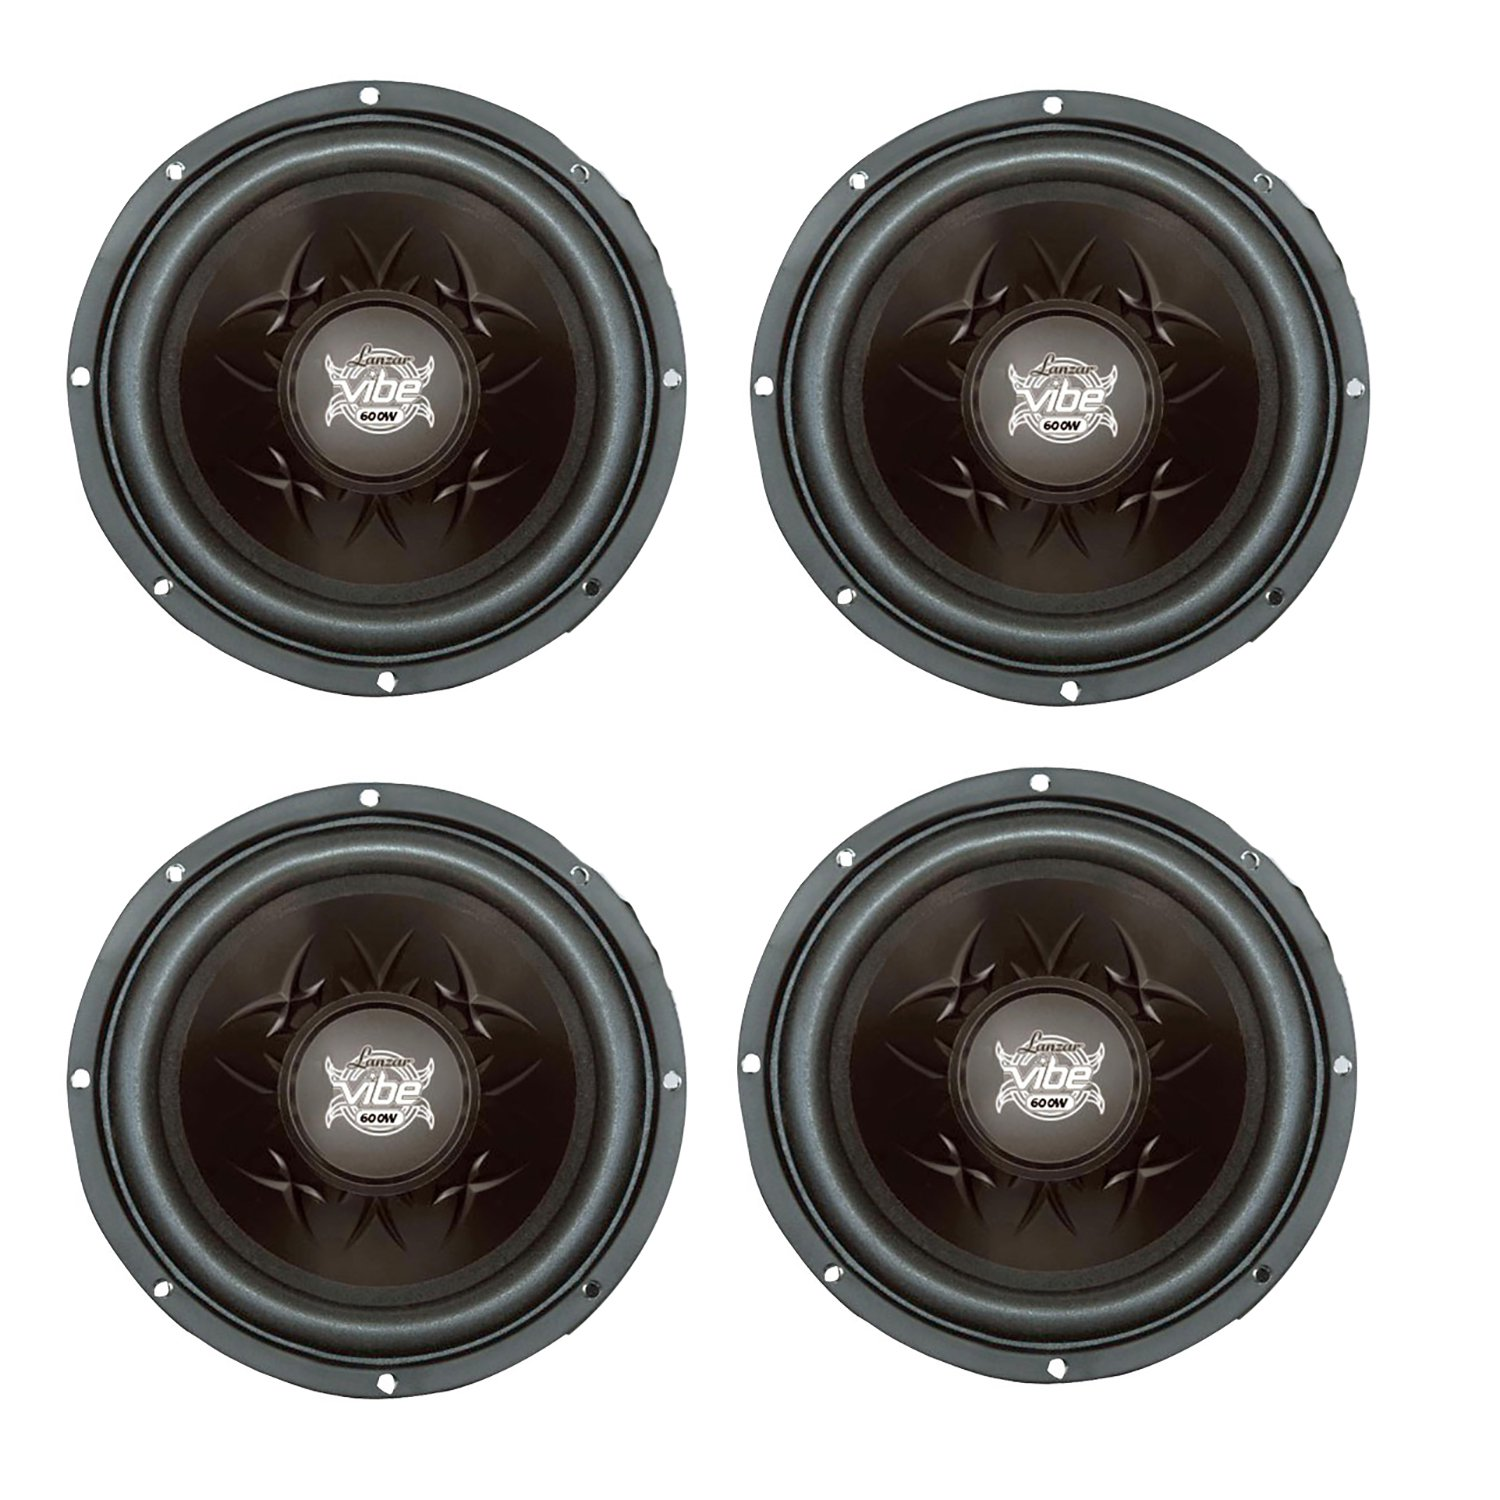 4) Lanzar Vibe 800 Watt 8-Inch 4-Ohm Subwoofers Black Car Audio SVC Subs | VW84 by